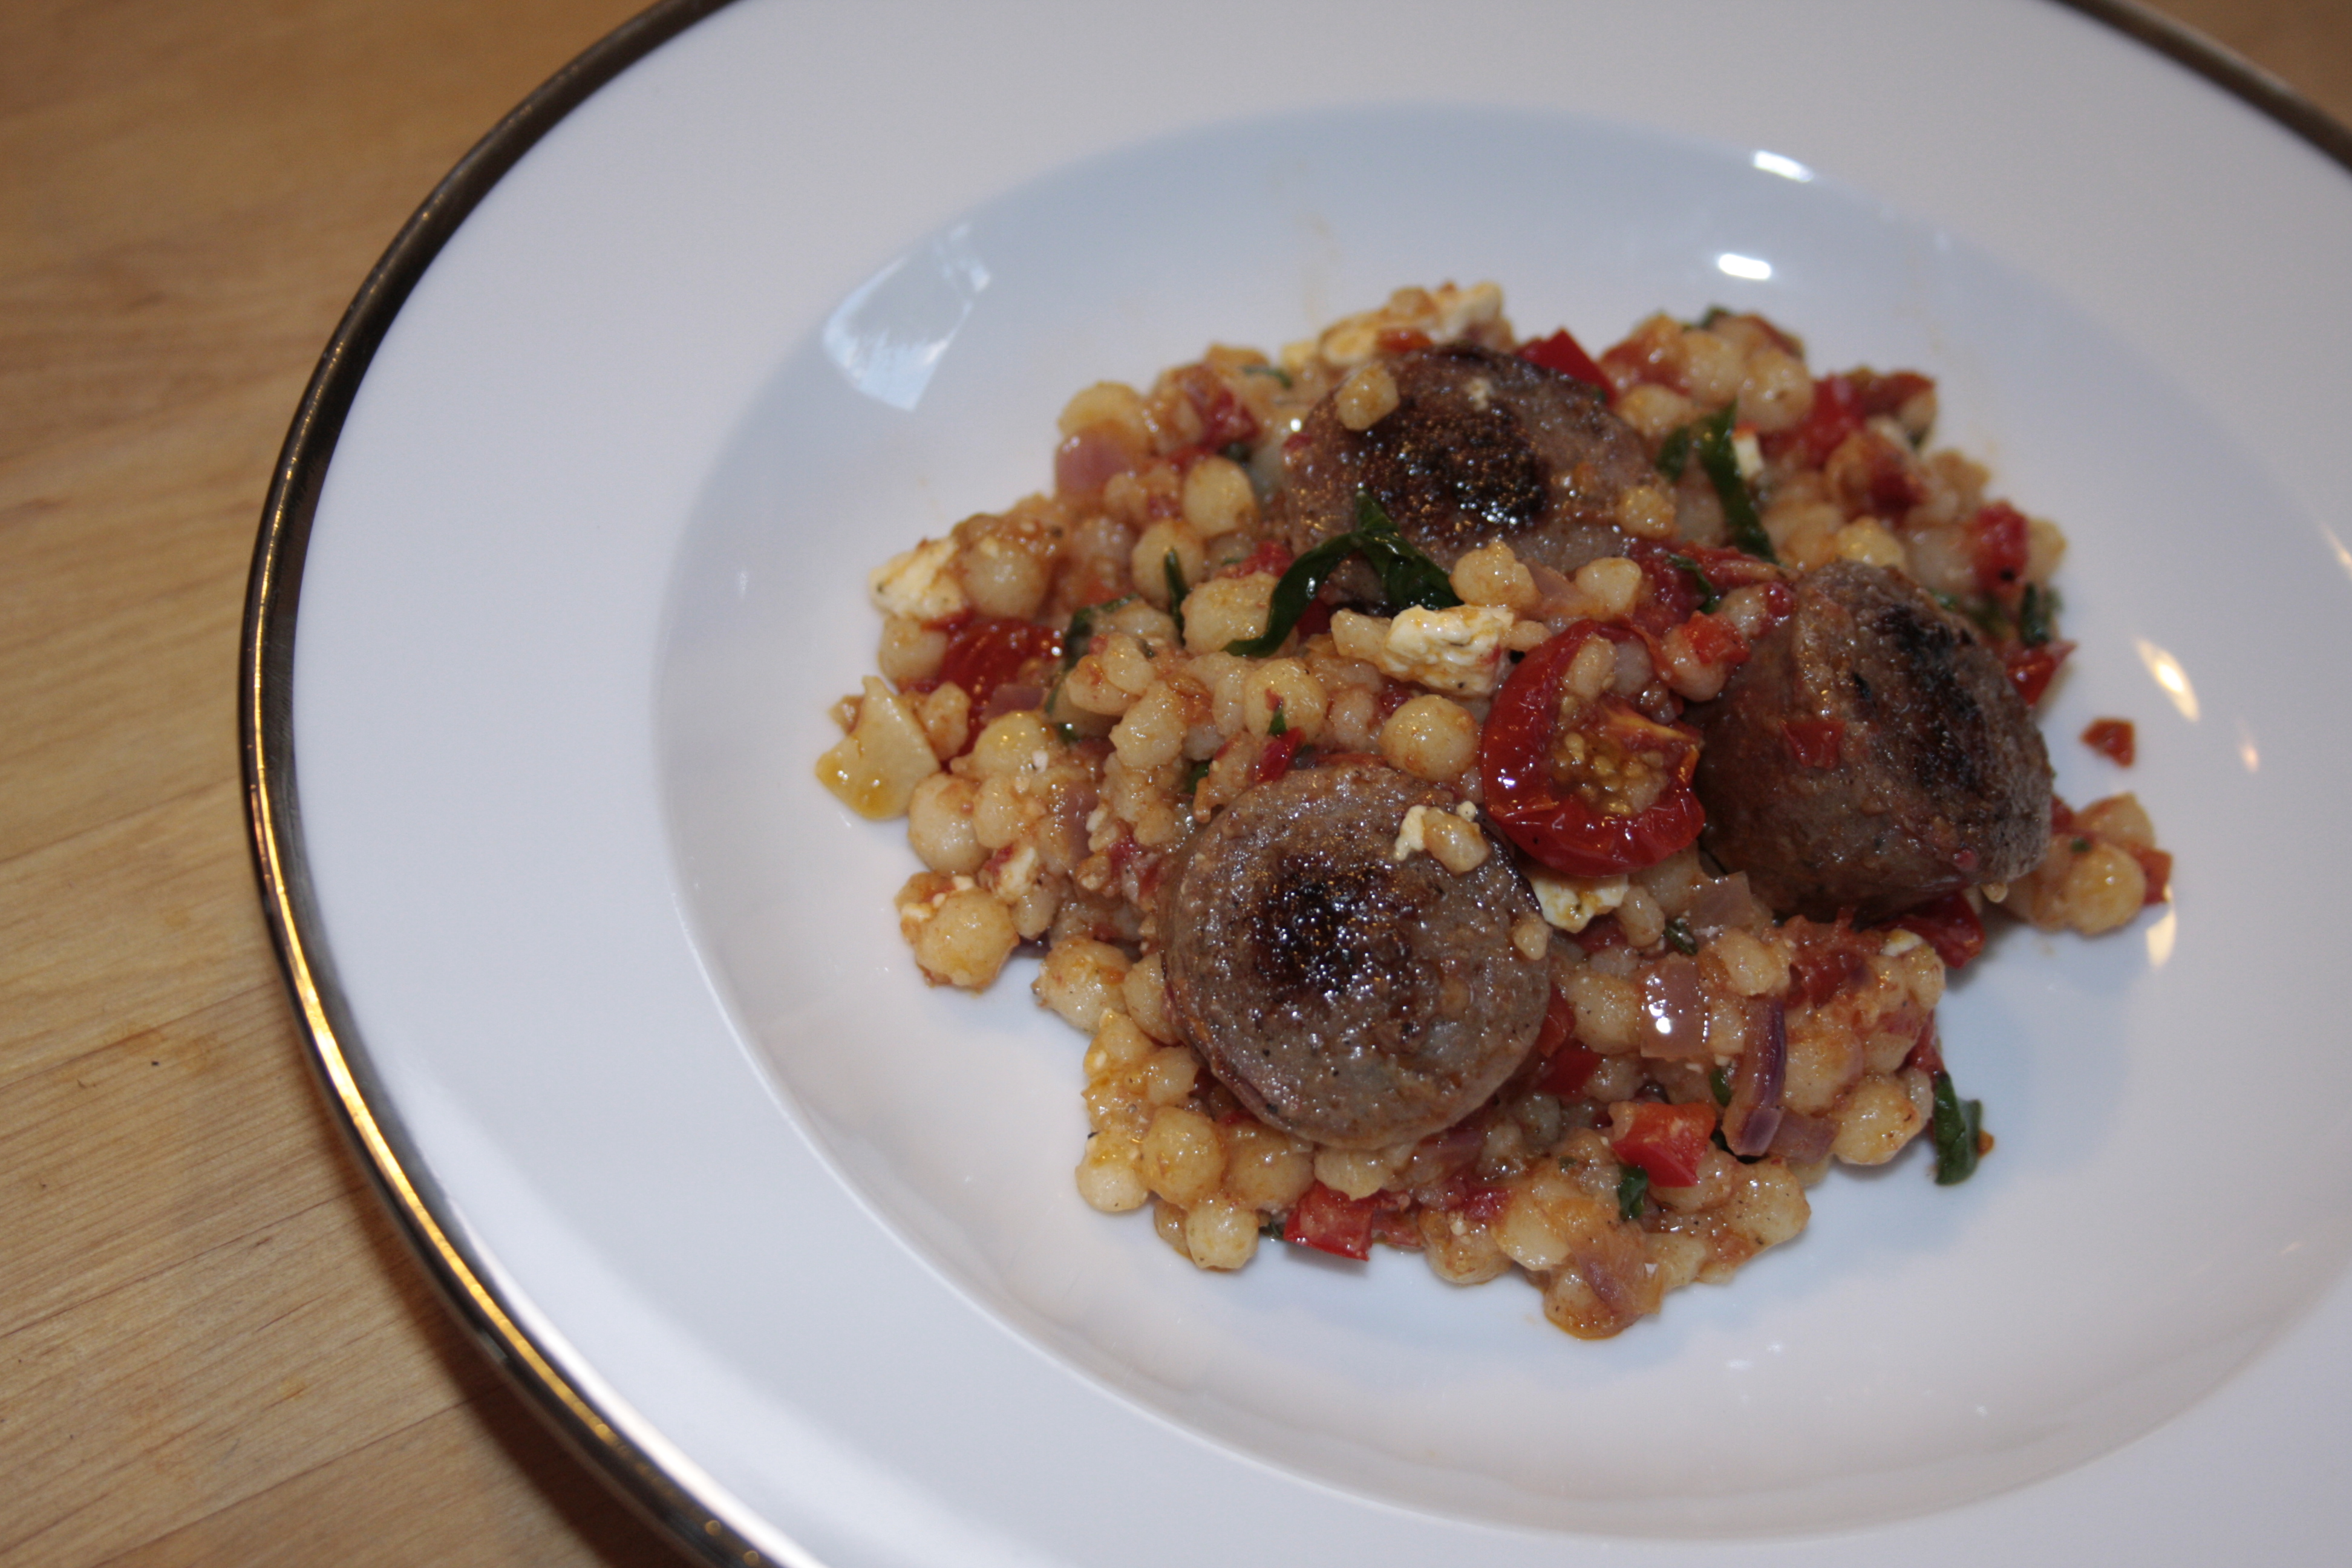 slow roasted tomato couscous with chicken sausage feta and basil